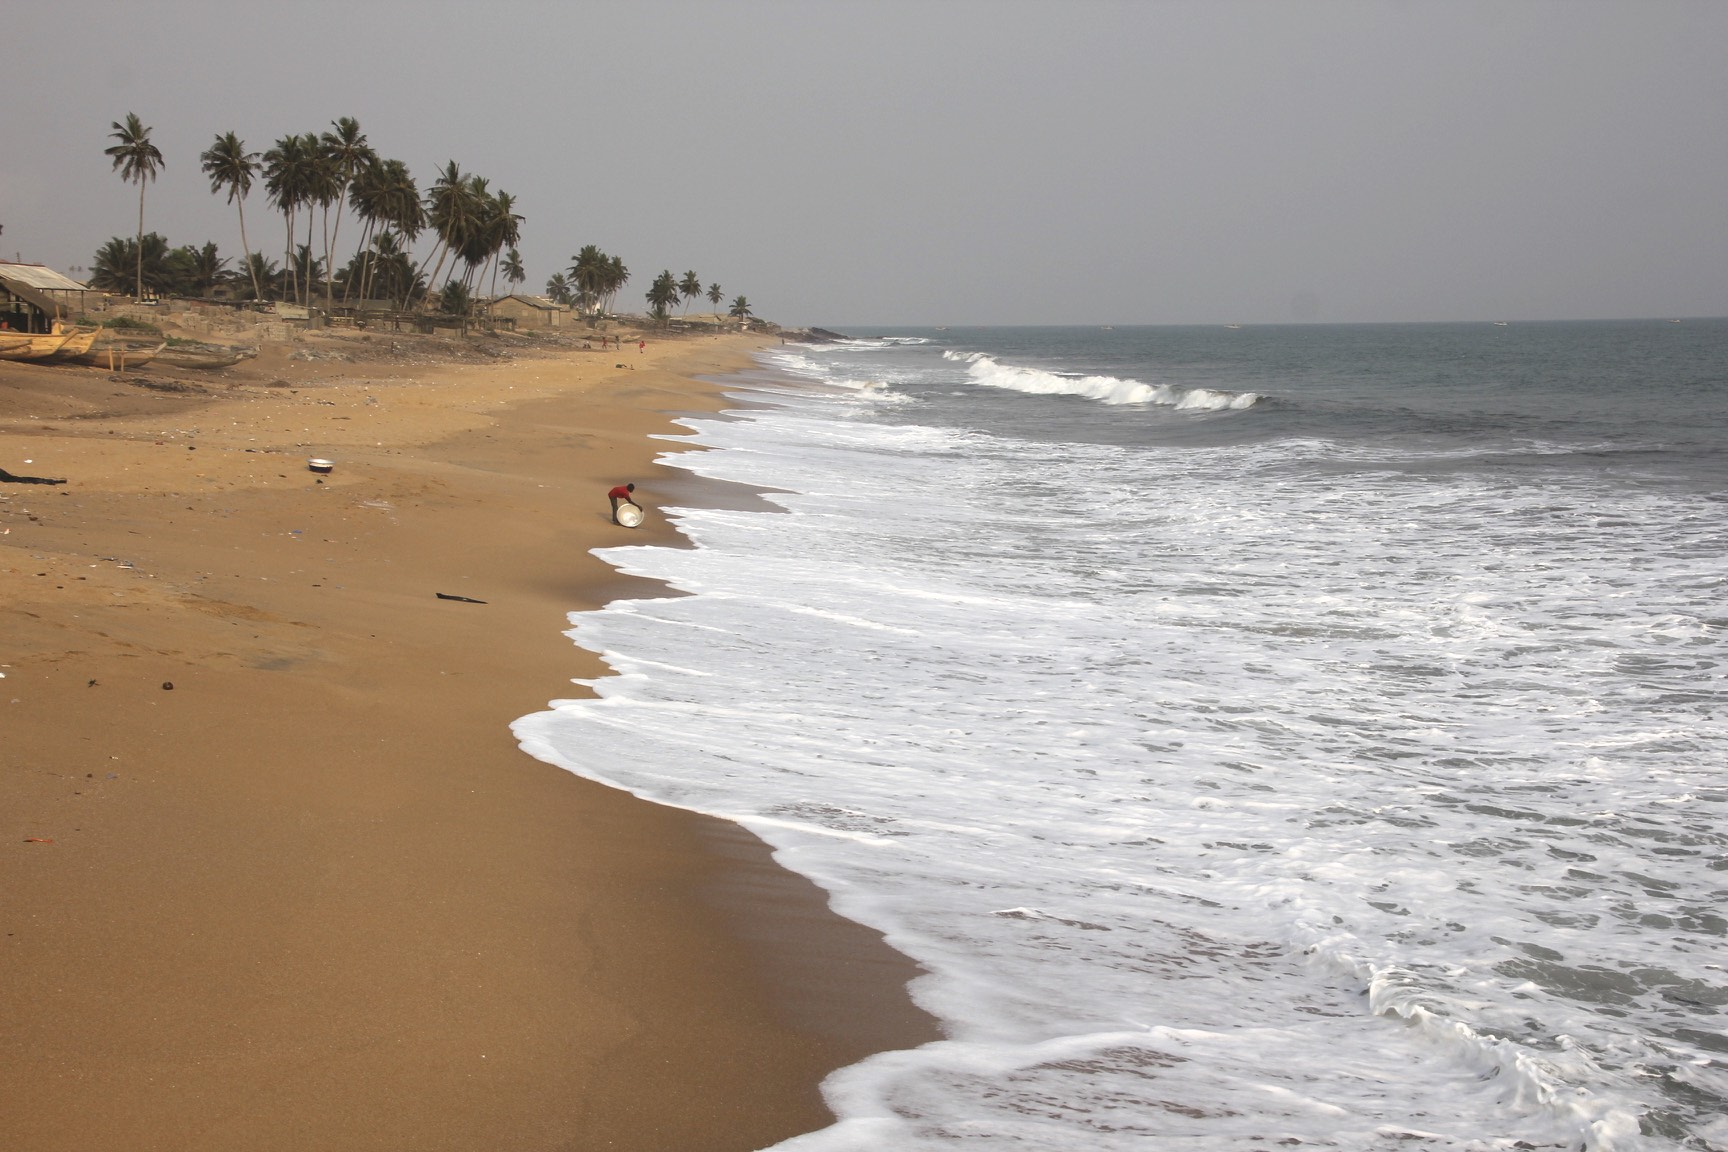 The Gold Coast of Ghana, the source of slaves for 400 years. A beautiful coast but too dangerous for swimming due to strong currents and sharks.